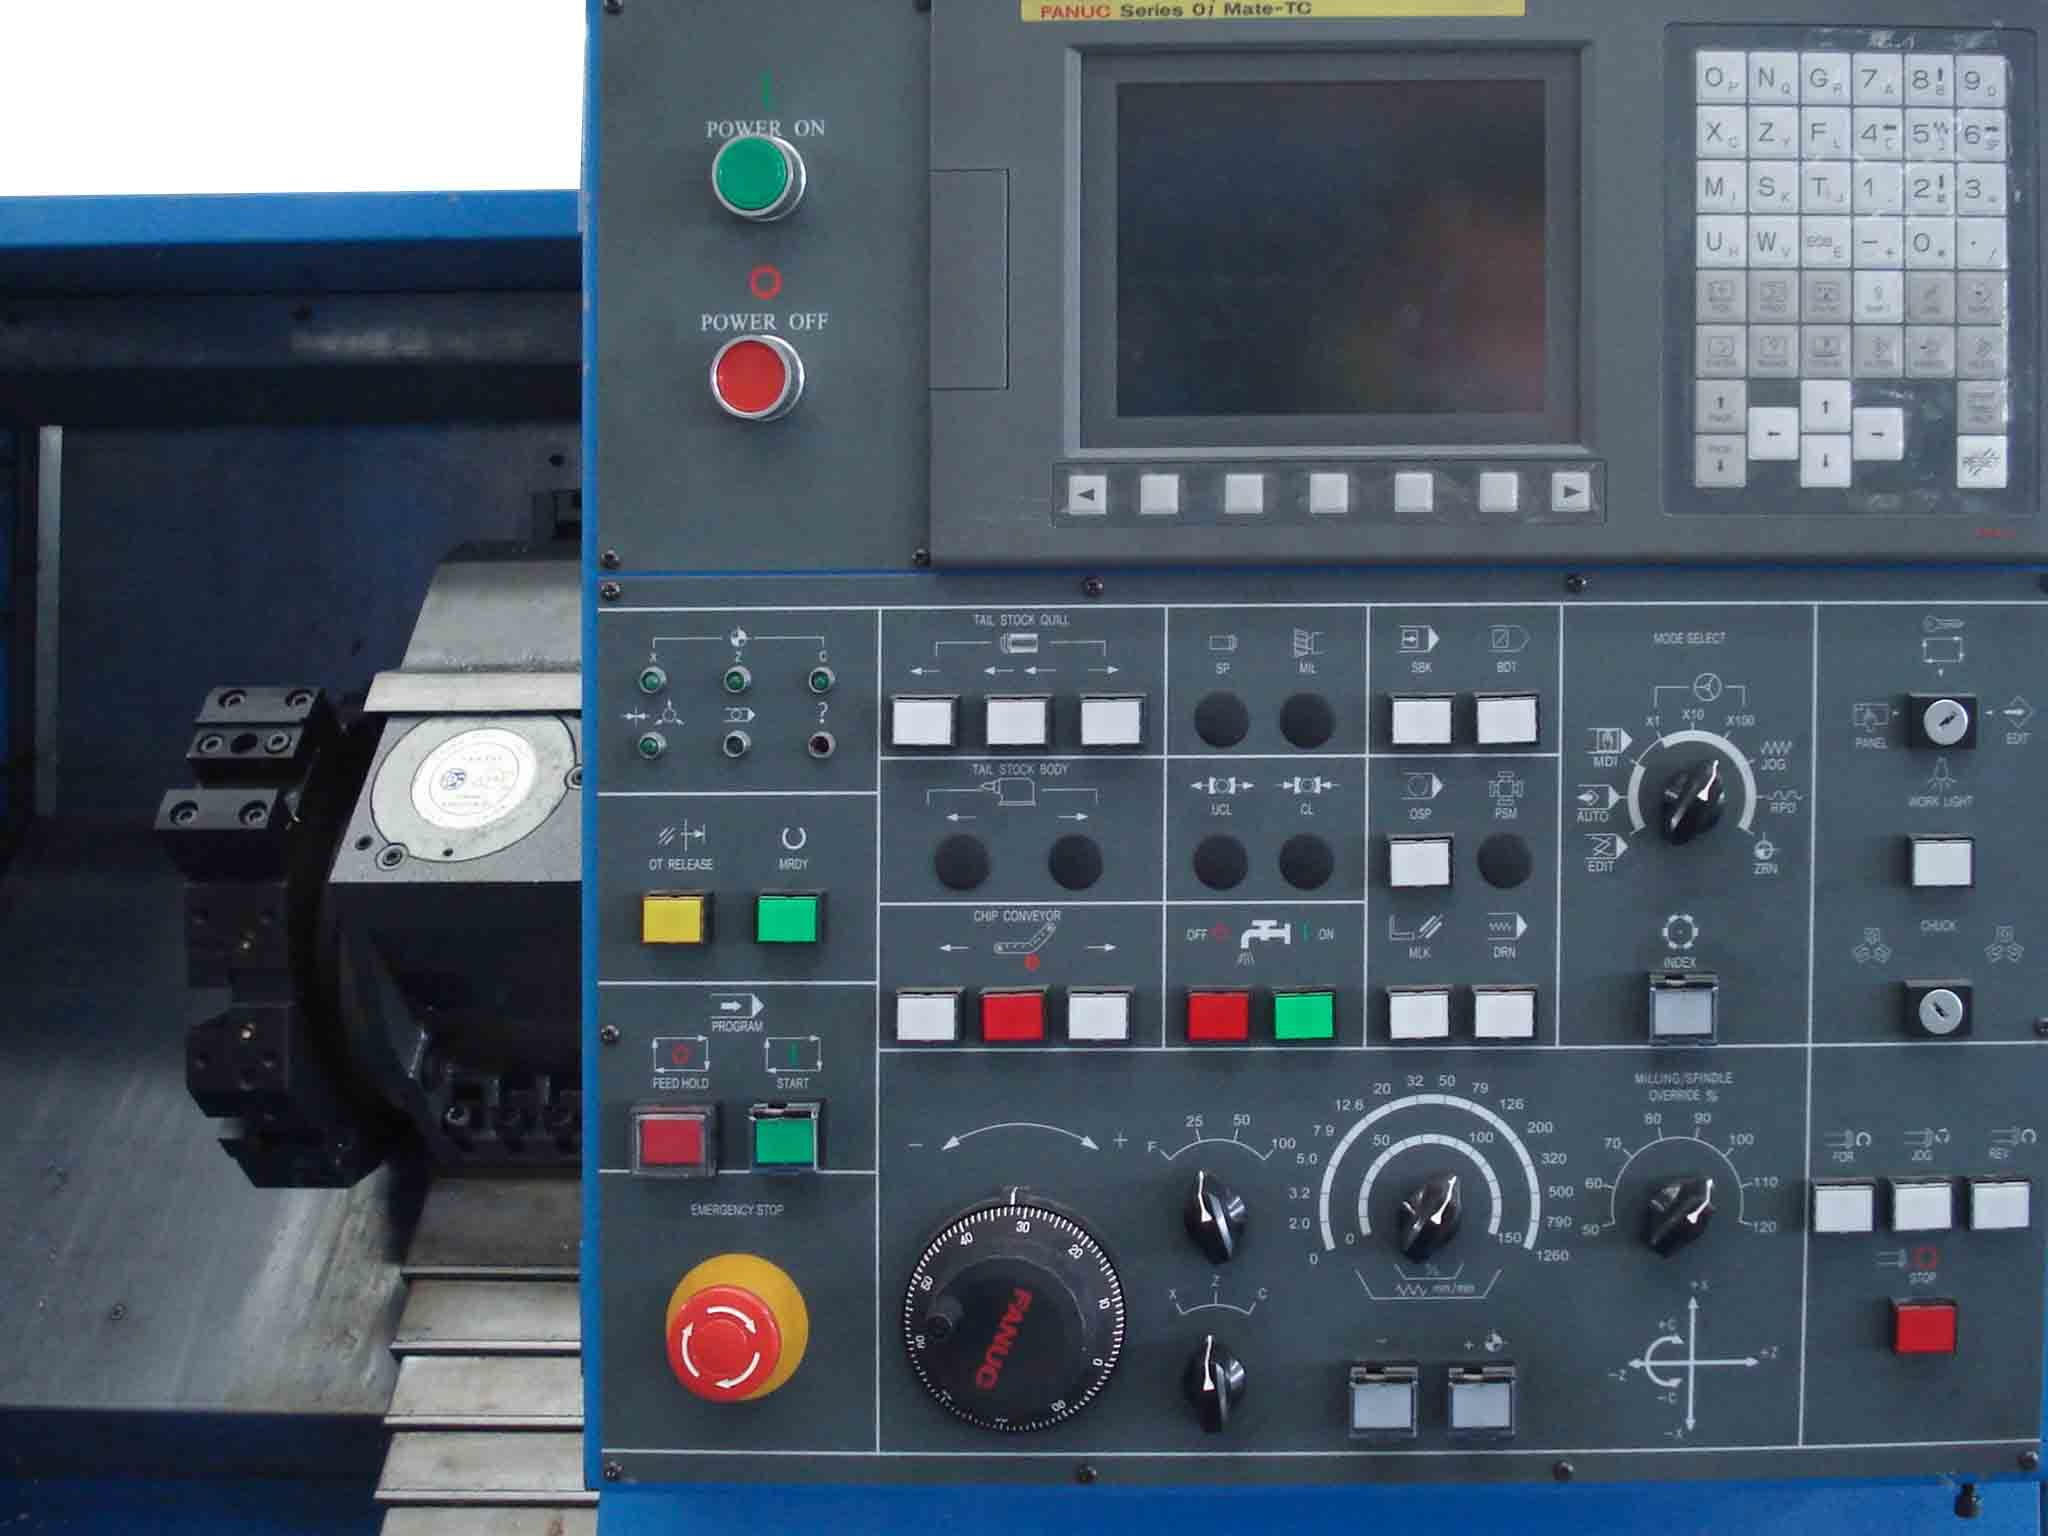 CNC lathe slant bed for metal working with funuc gsk control